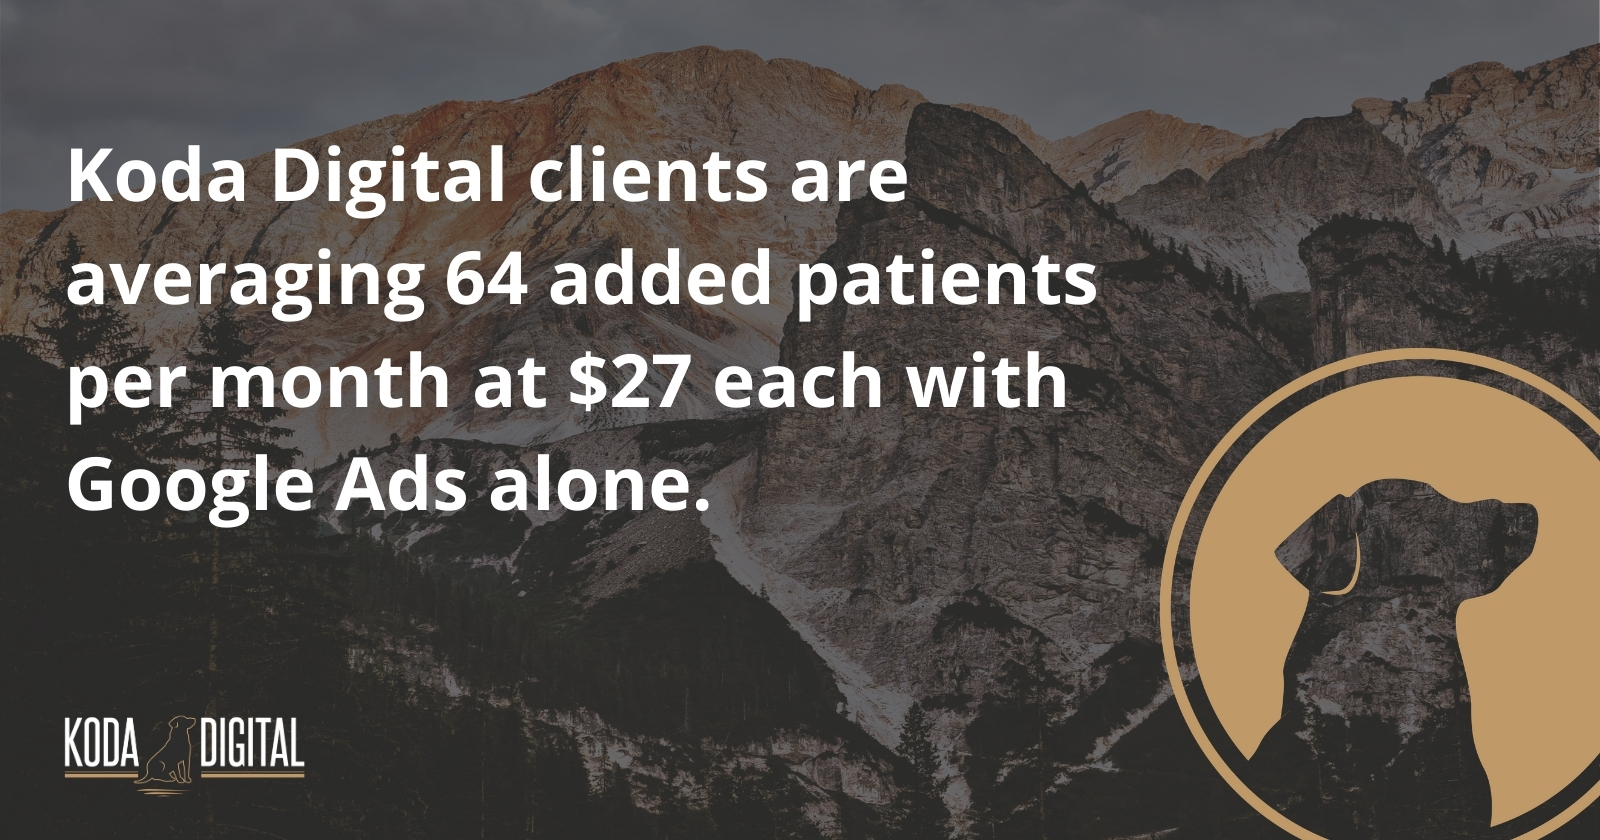 Image of Koda Digital information about the average number of added Koda Digital client patients per month and average cost of each patients with the use of Google Ads alone